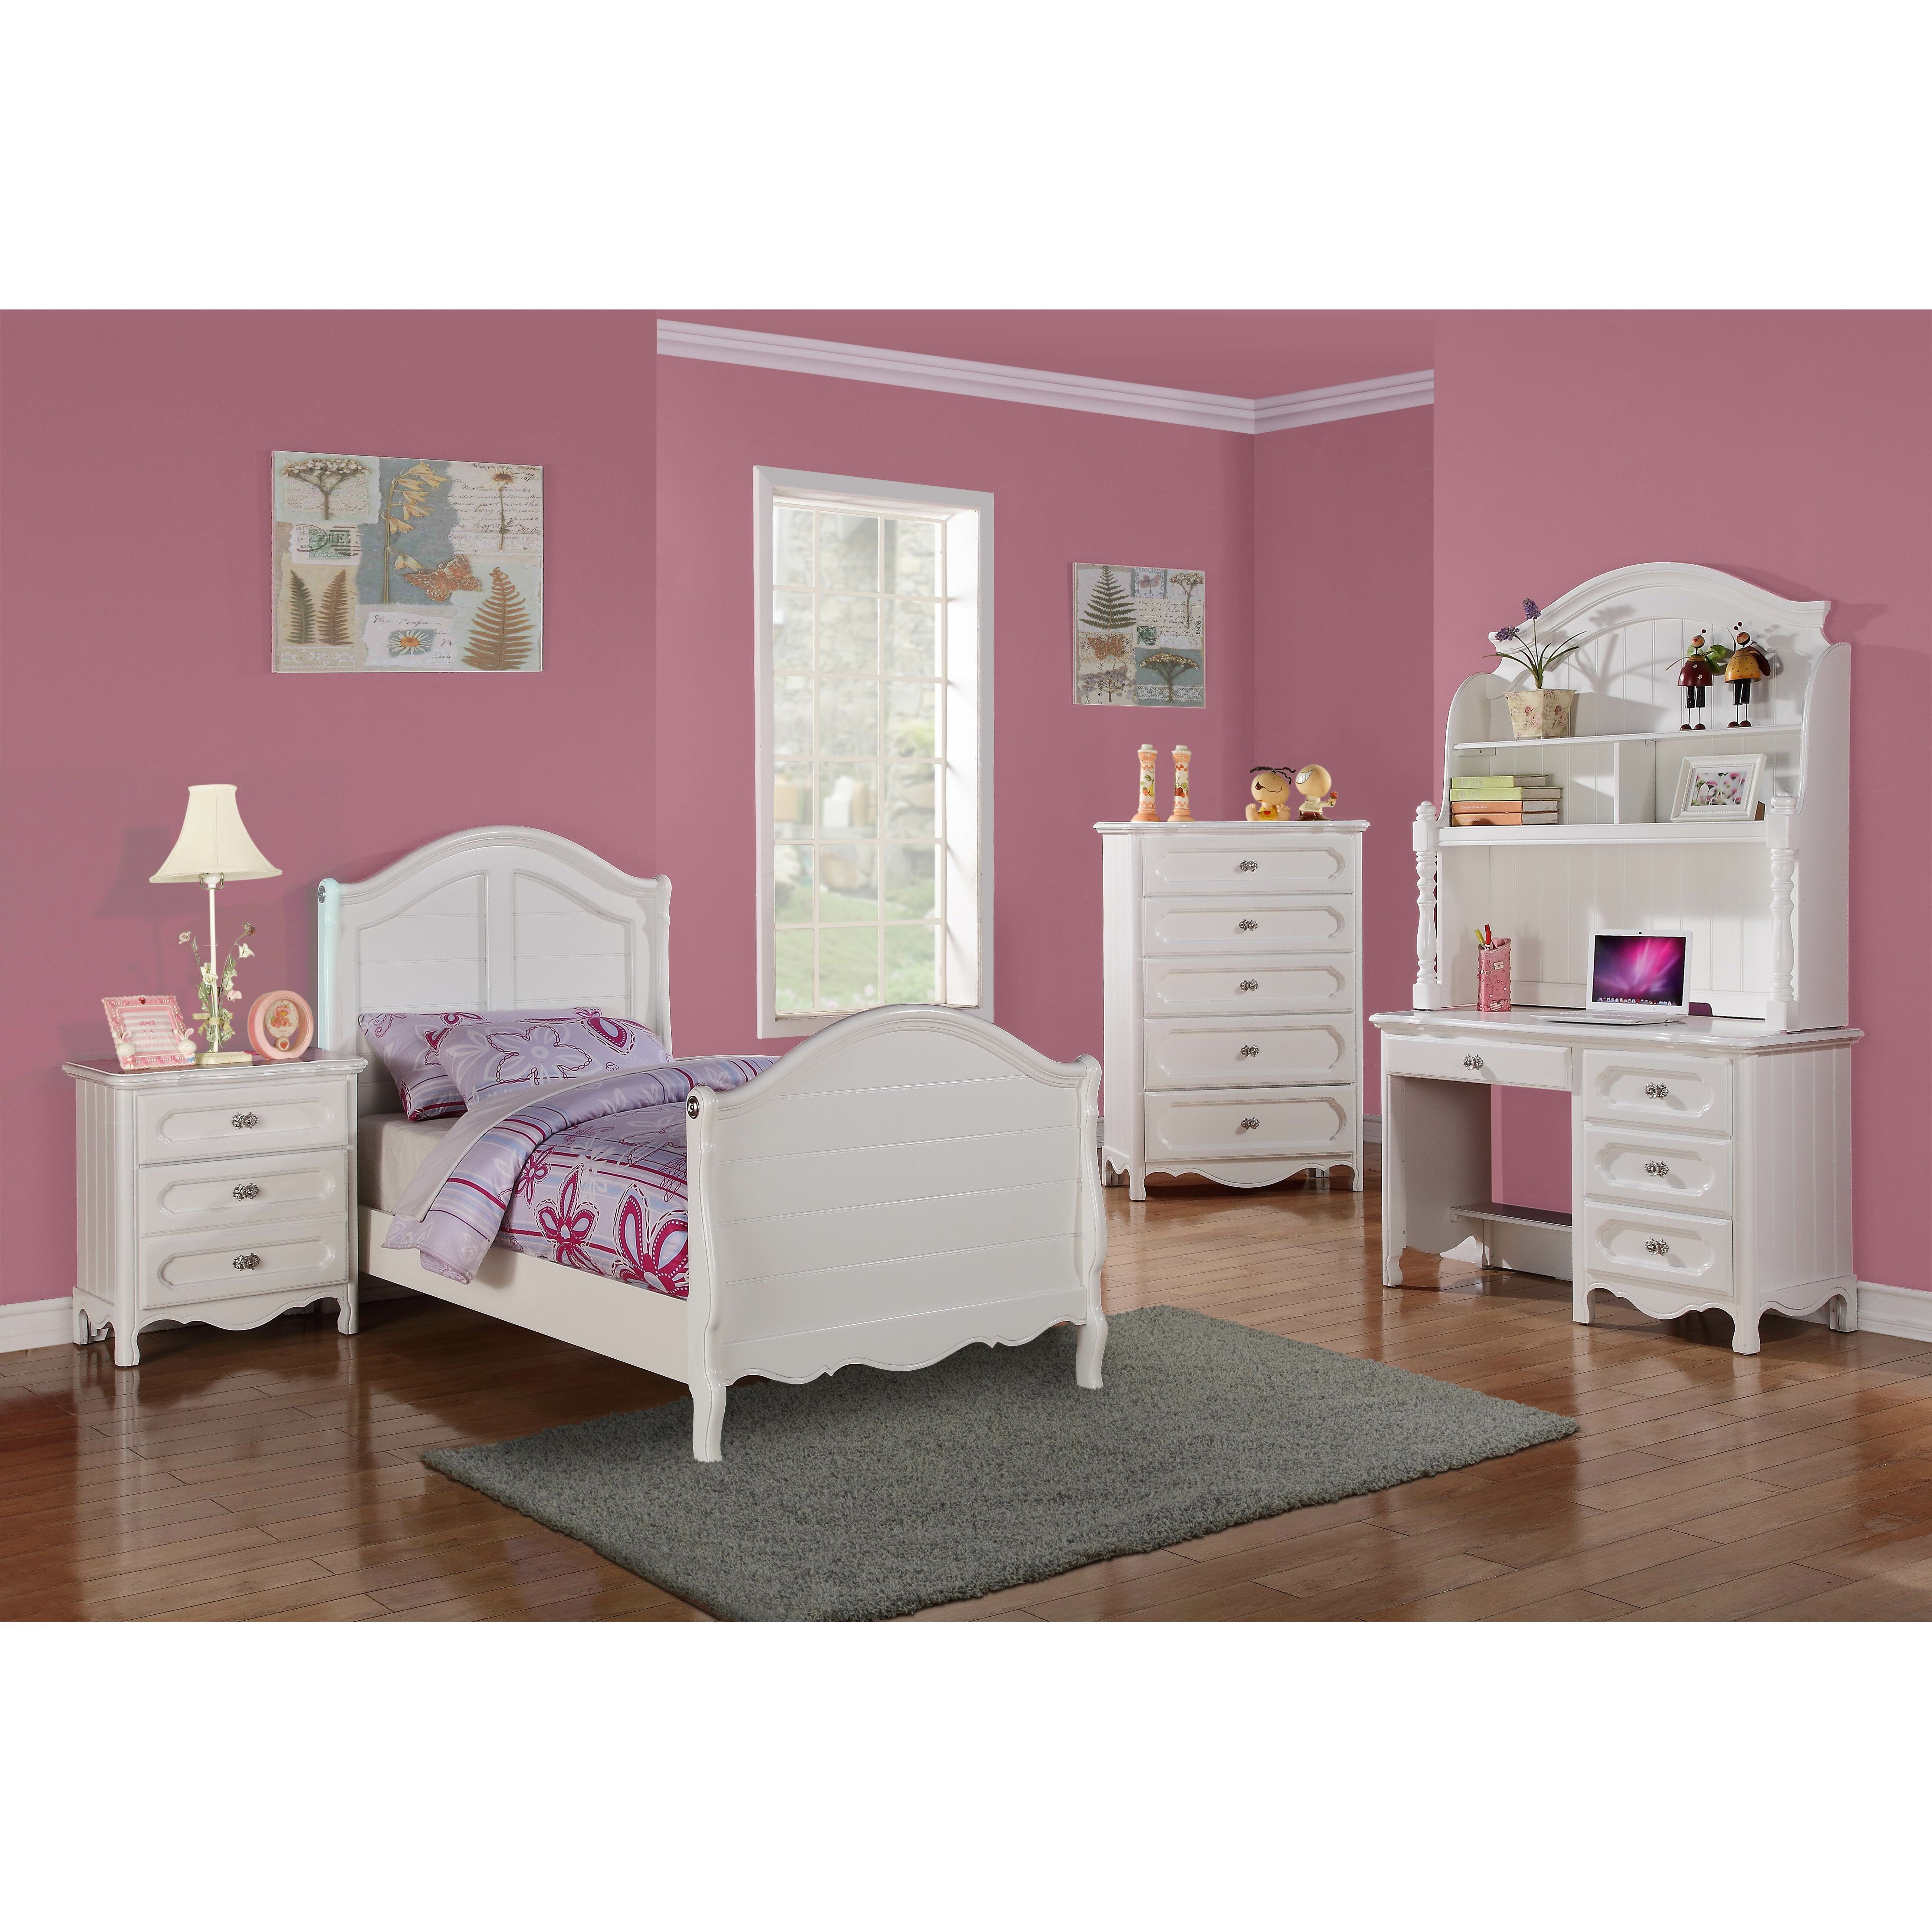 Woodhaven hill hayley sleigh customizable bedroom set for Womens bedroom furniture